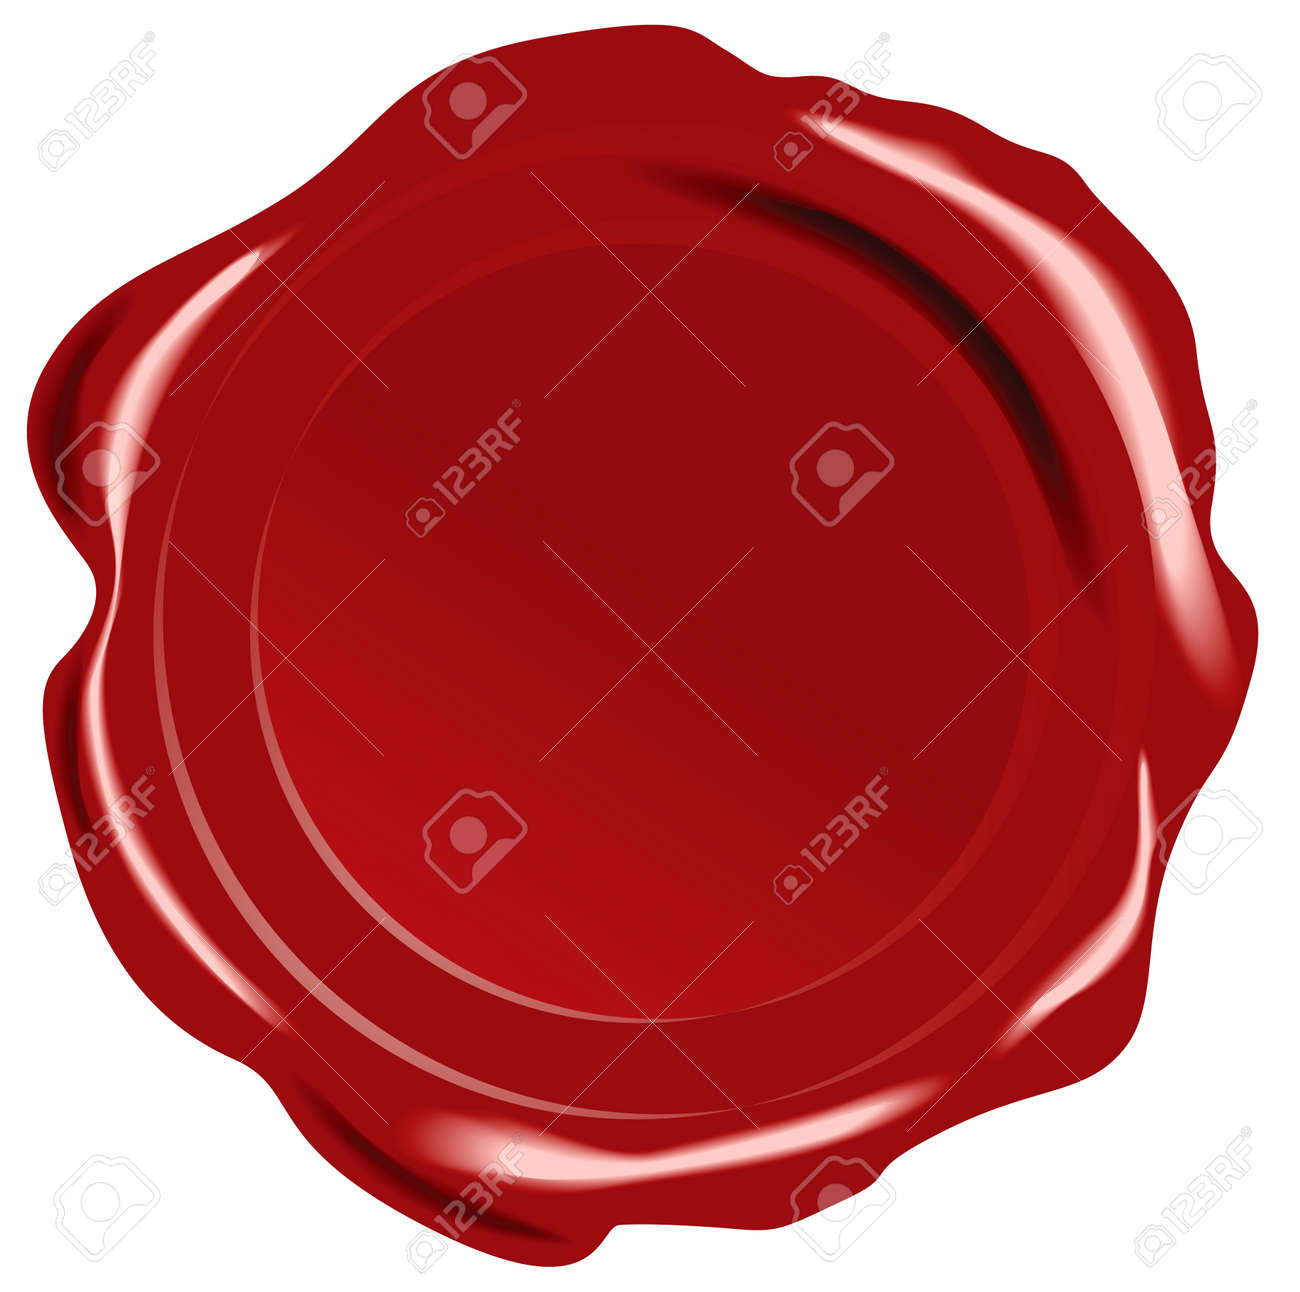 Red vector wax seal on white background - 4231042